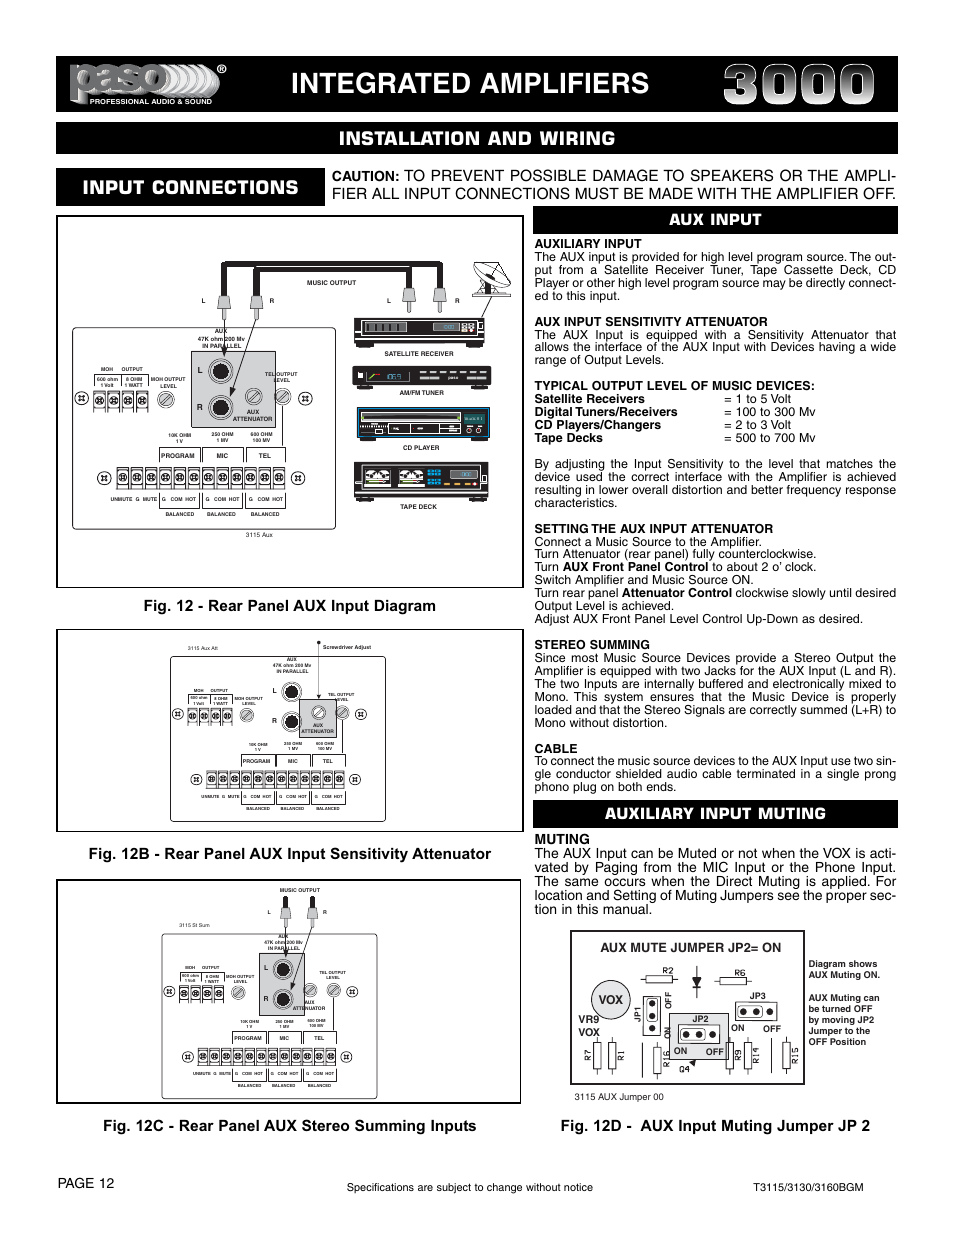 integrated amplifiers installation and wiring input connections rh manualsdir com Headphone with Aux For Car Aux Cord